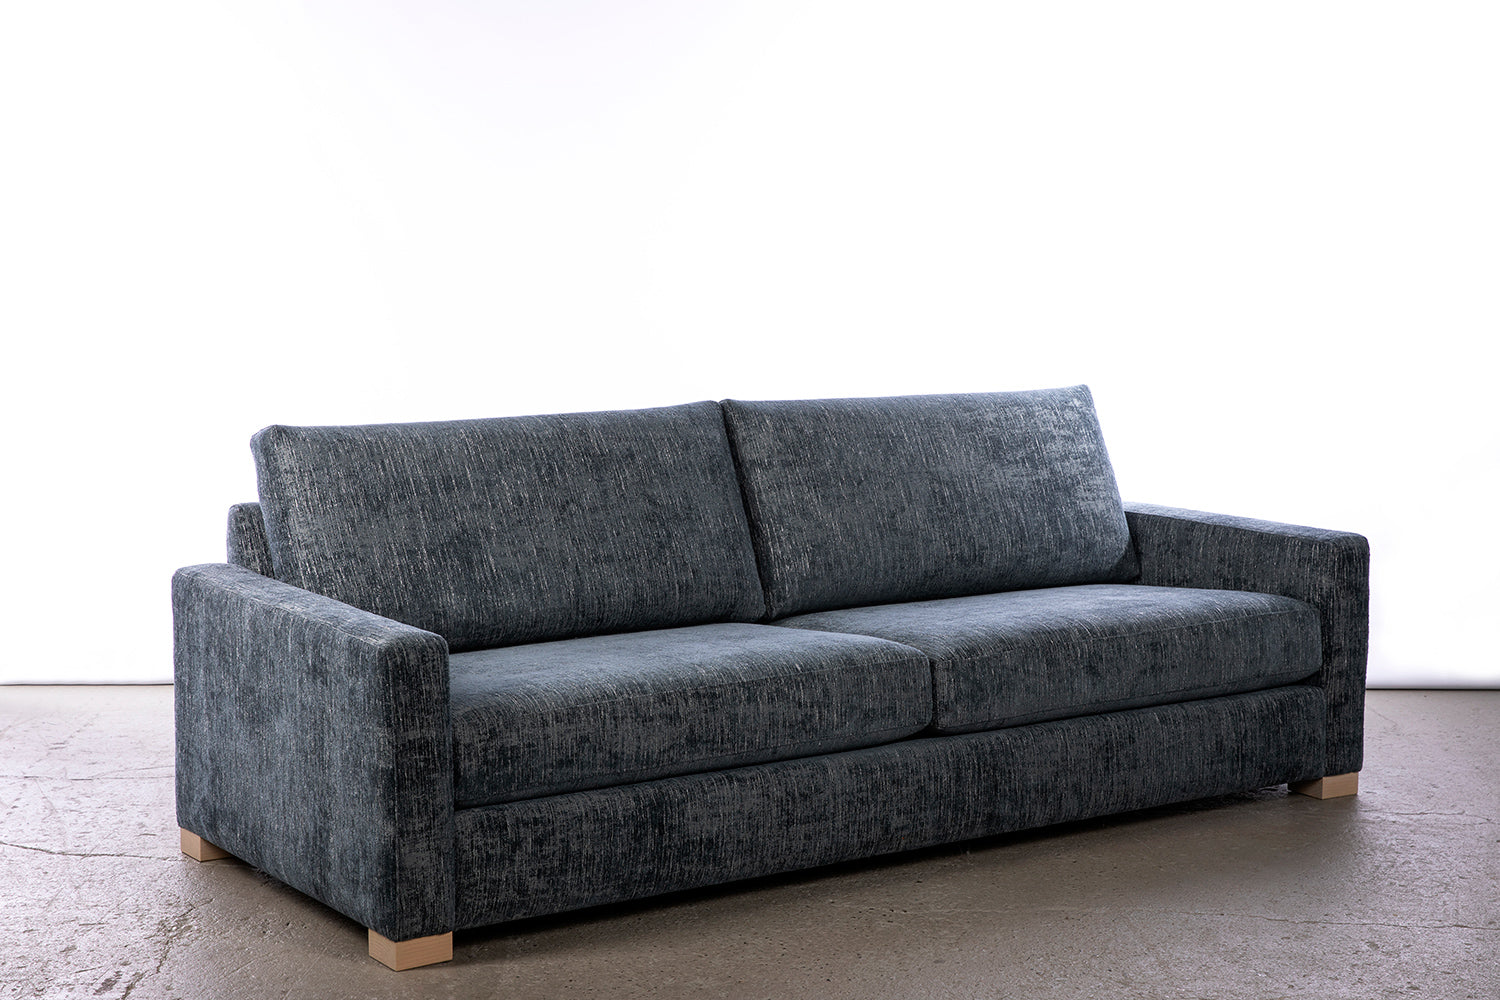 ffabb coasty slim sofa